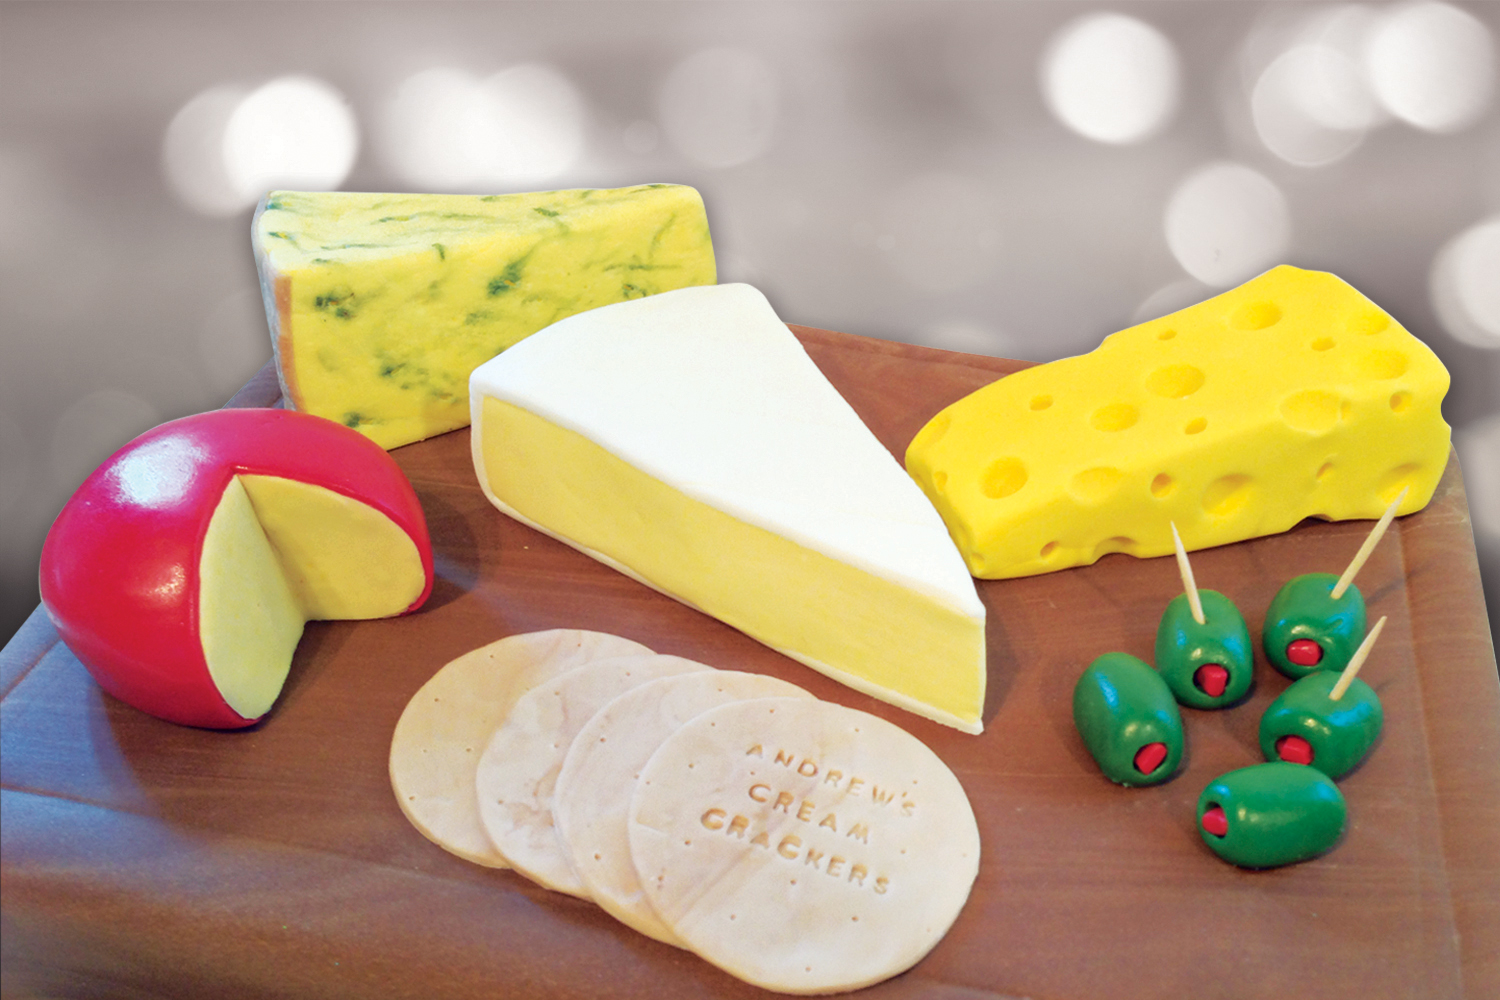 cheese-board-birthday-cakes-by-rachel-rachel.jpg